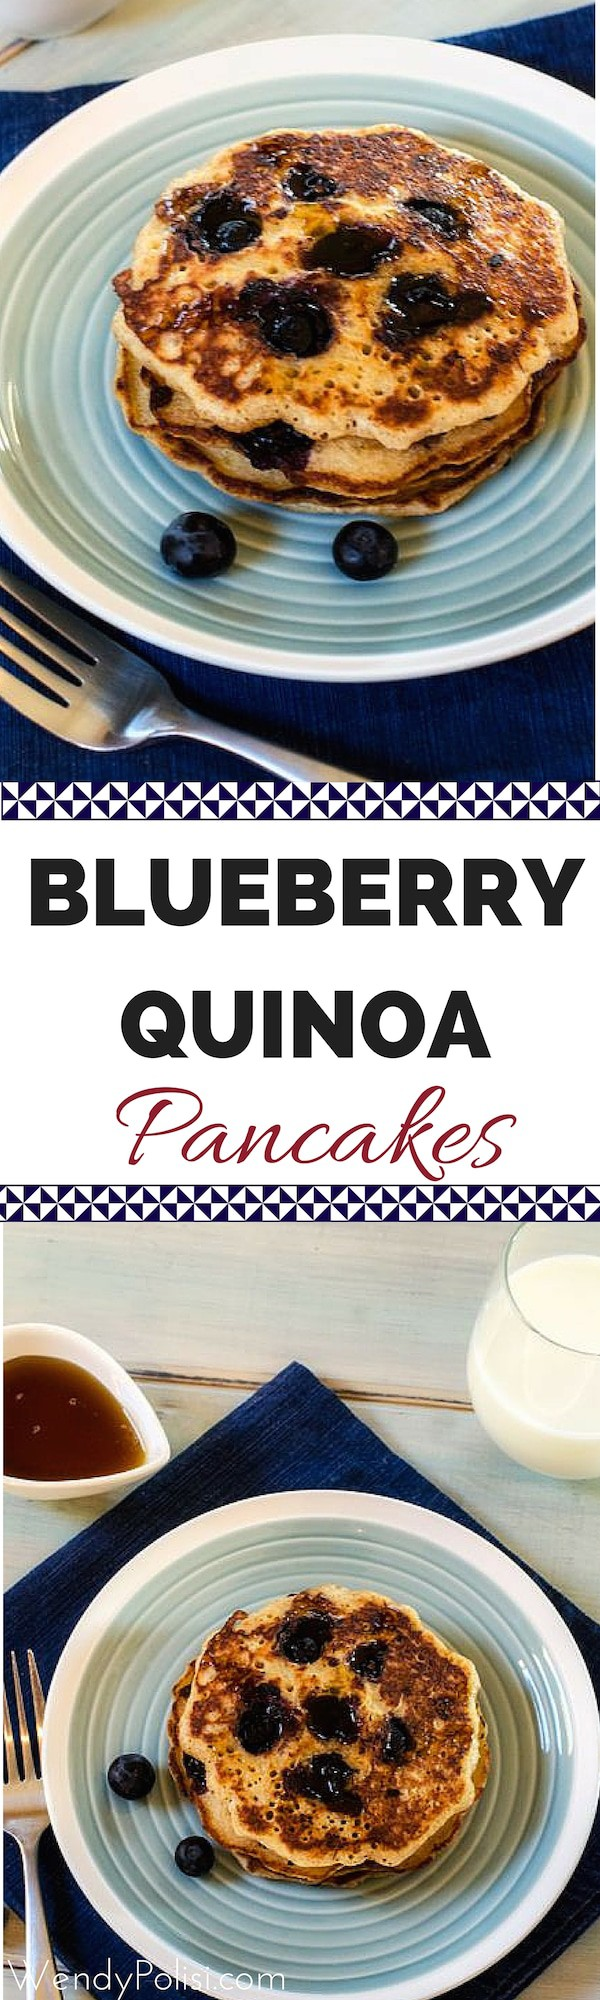 These Blueberry Quinoa Pancakes will make your whole family happy! They can be made gluten free or not and have a vegan option. So delicious! #quinoa #healthybreakfast #quinoabreakfast #pancakes #glutenfreepancakes #glutenfree